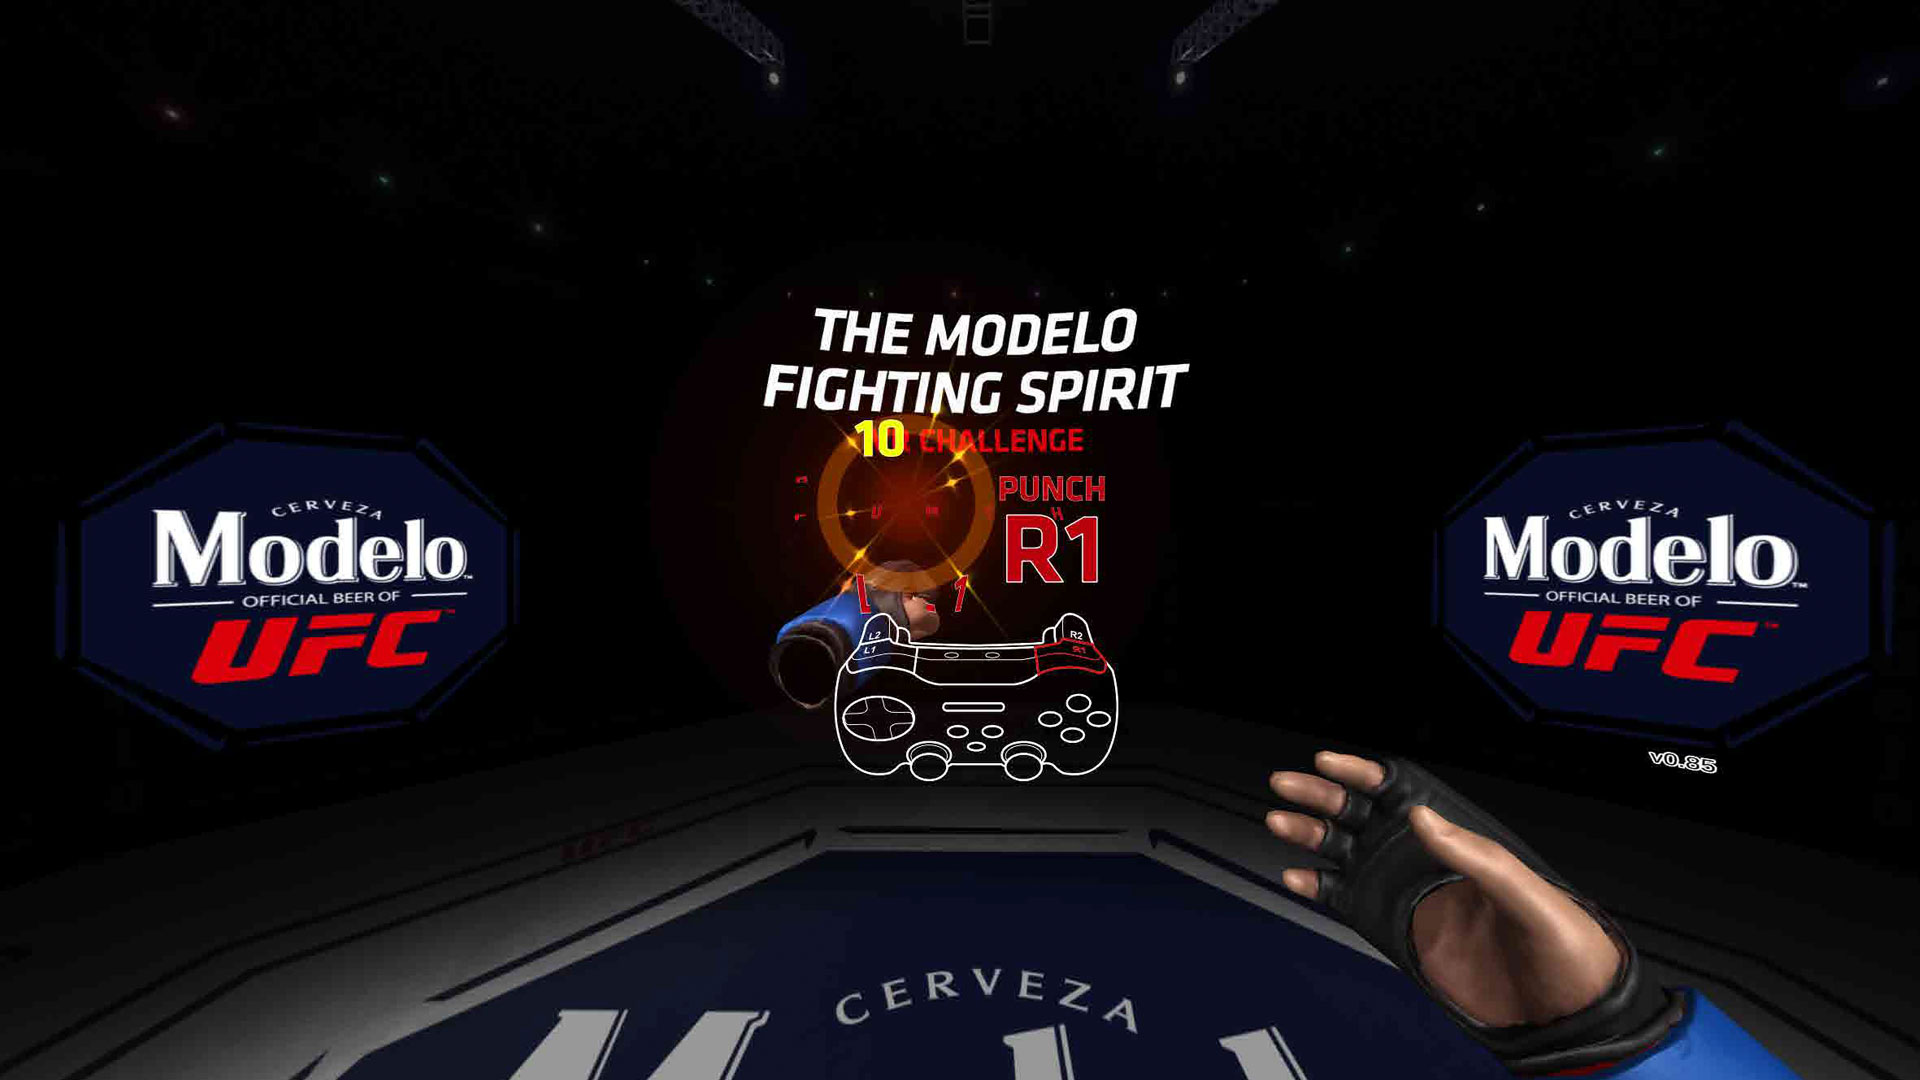 Modelo and UFC Fans Celebrate the Fighting Spirit with VR